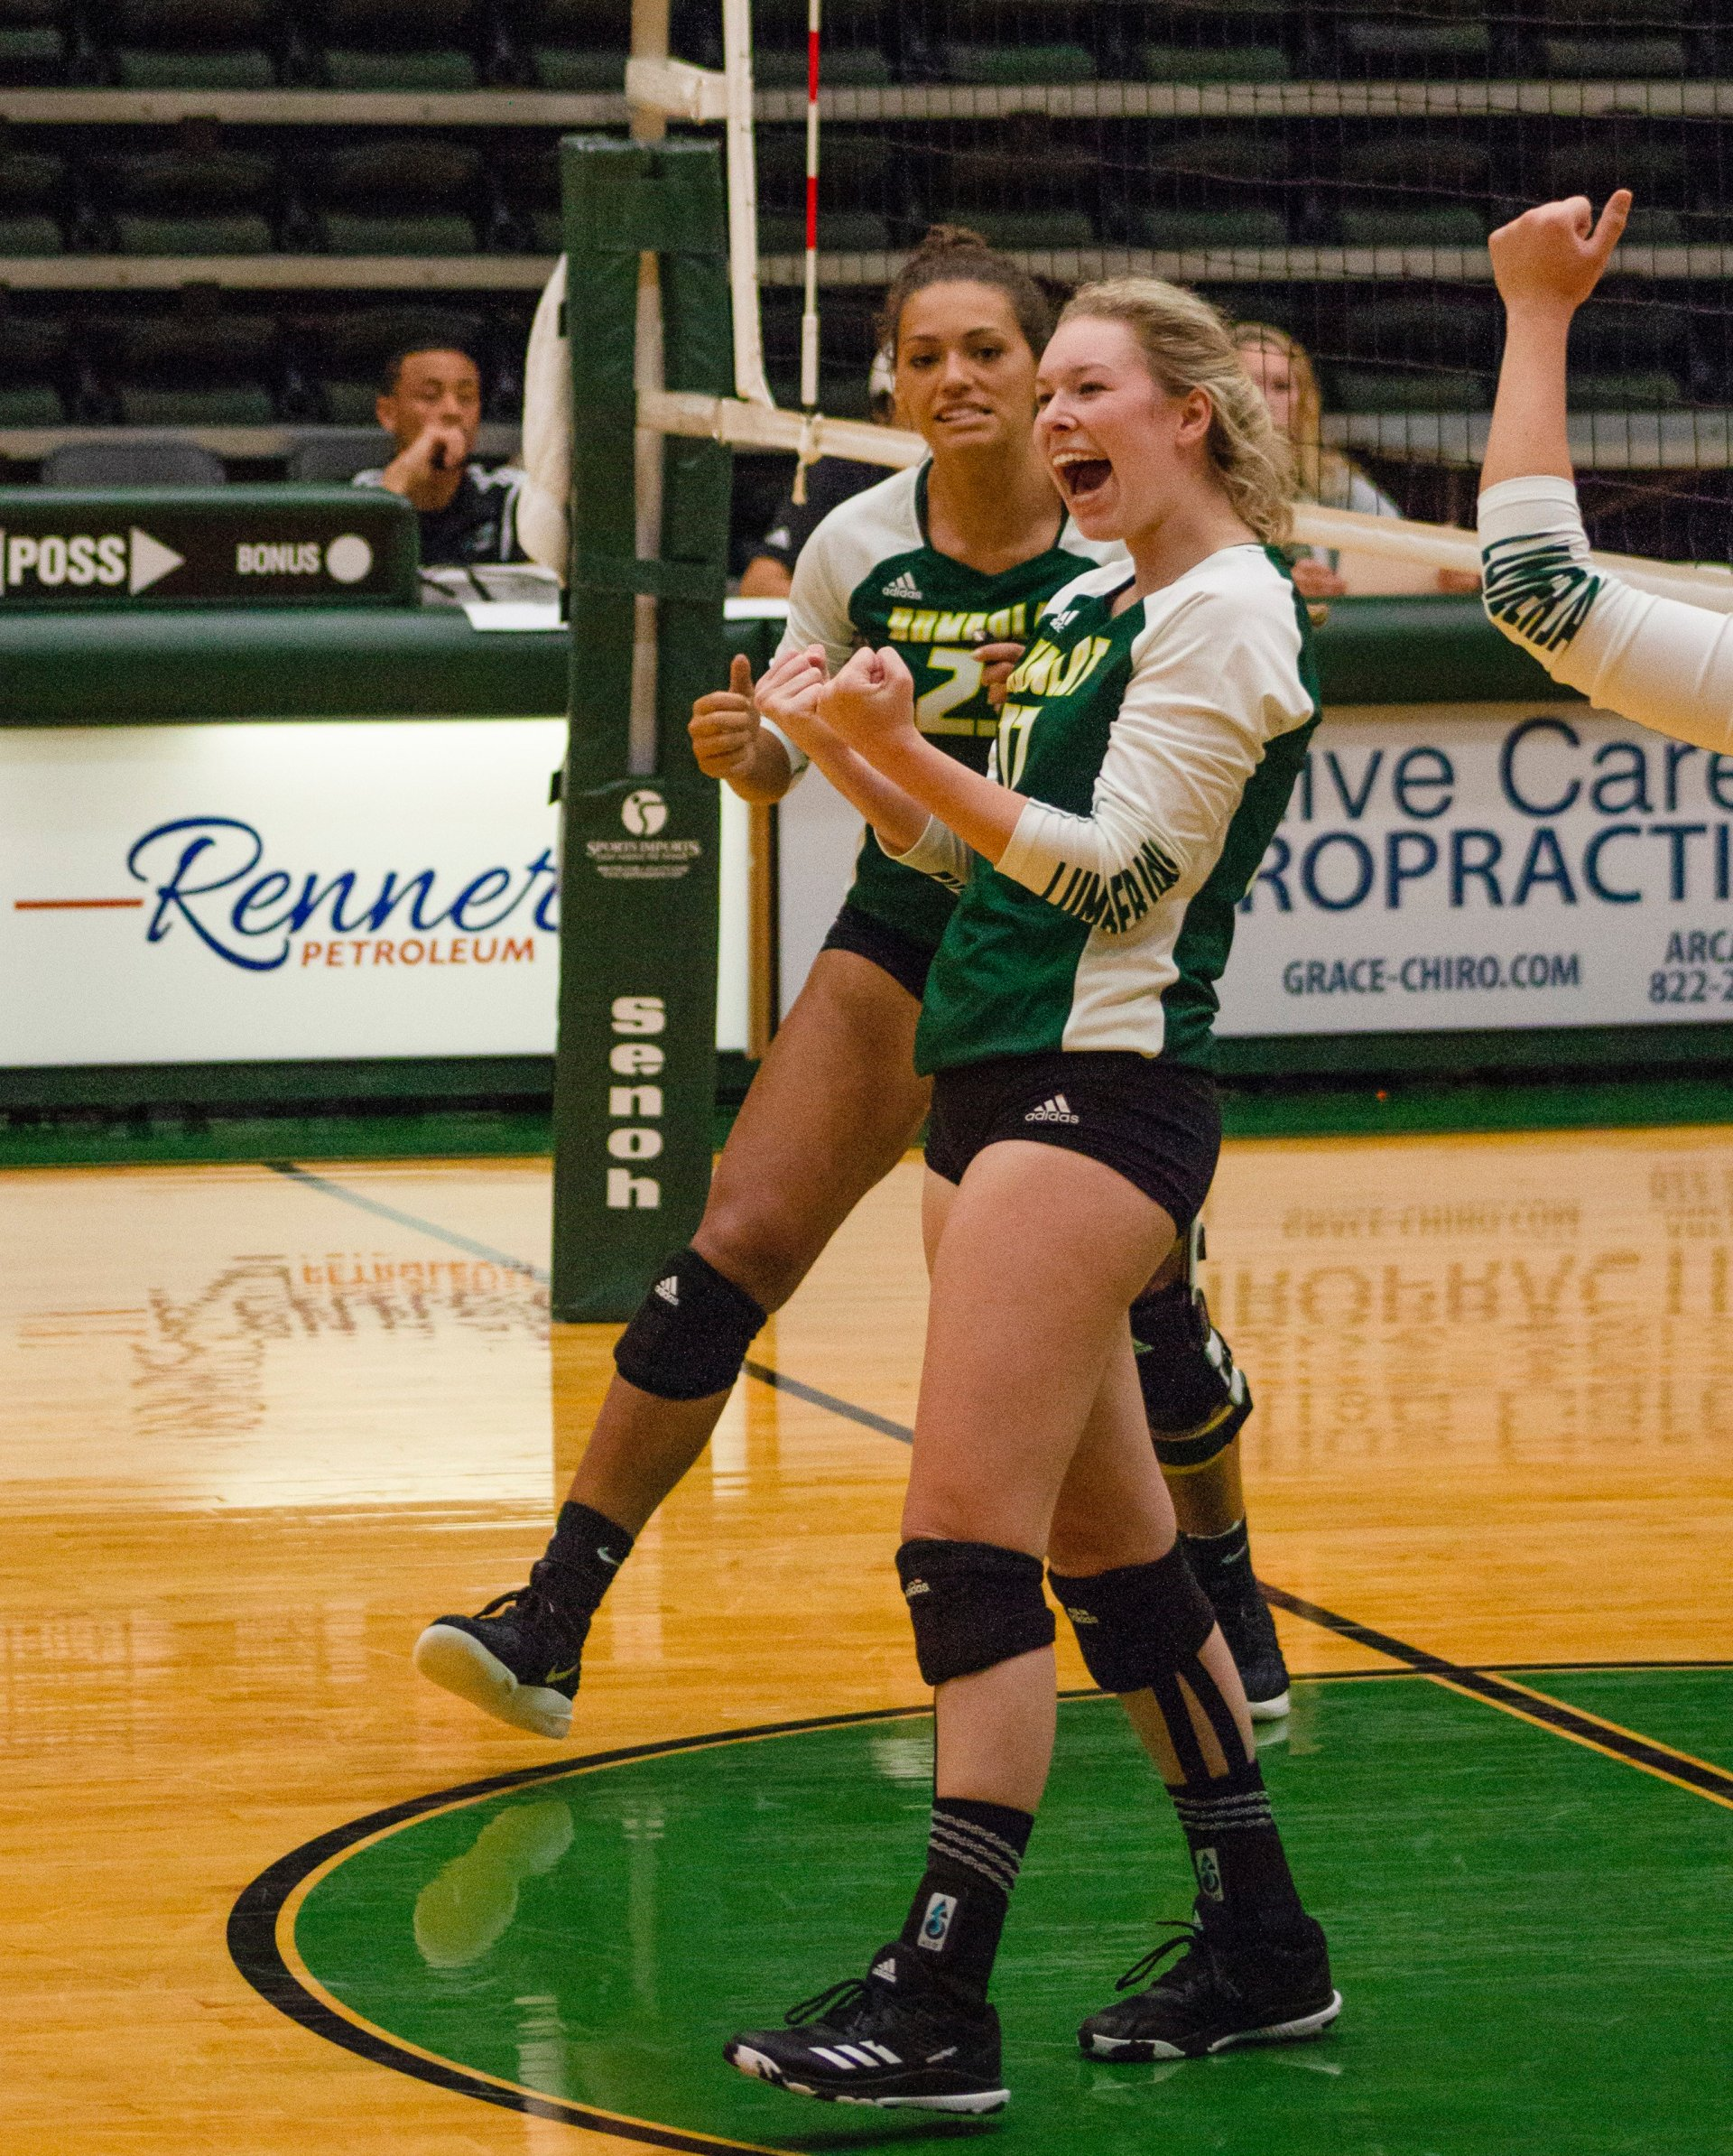 Hannah Cantrell (left) and Savannah Horton (right) celebrate a score against Stanislaus State Volleyball at the Lumberjack Arena on Saturday Sept. 29. | Photo by Lauren Shea